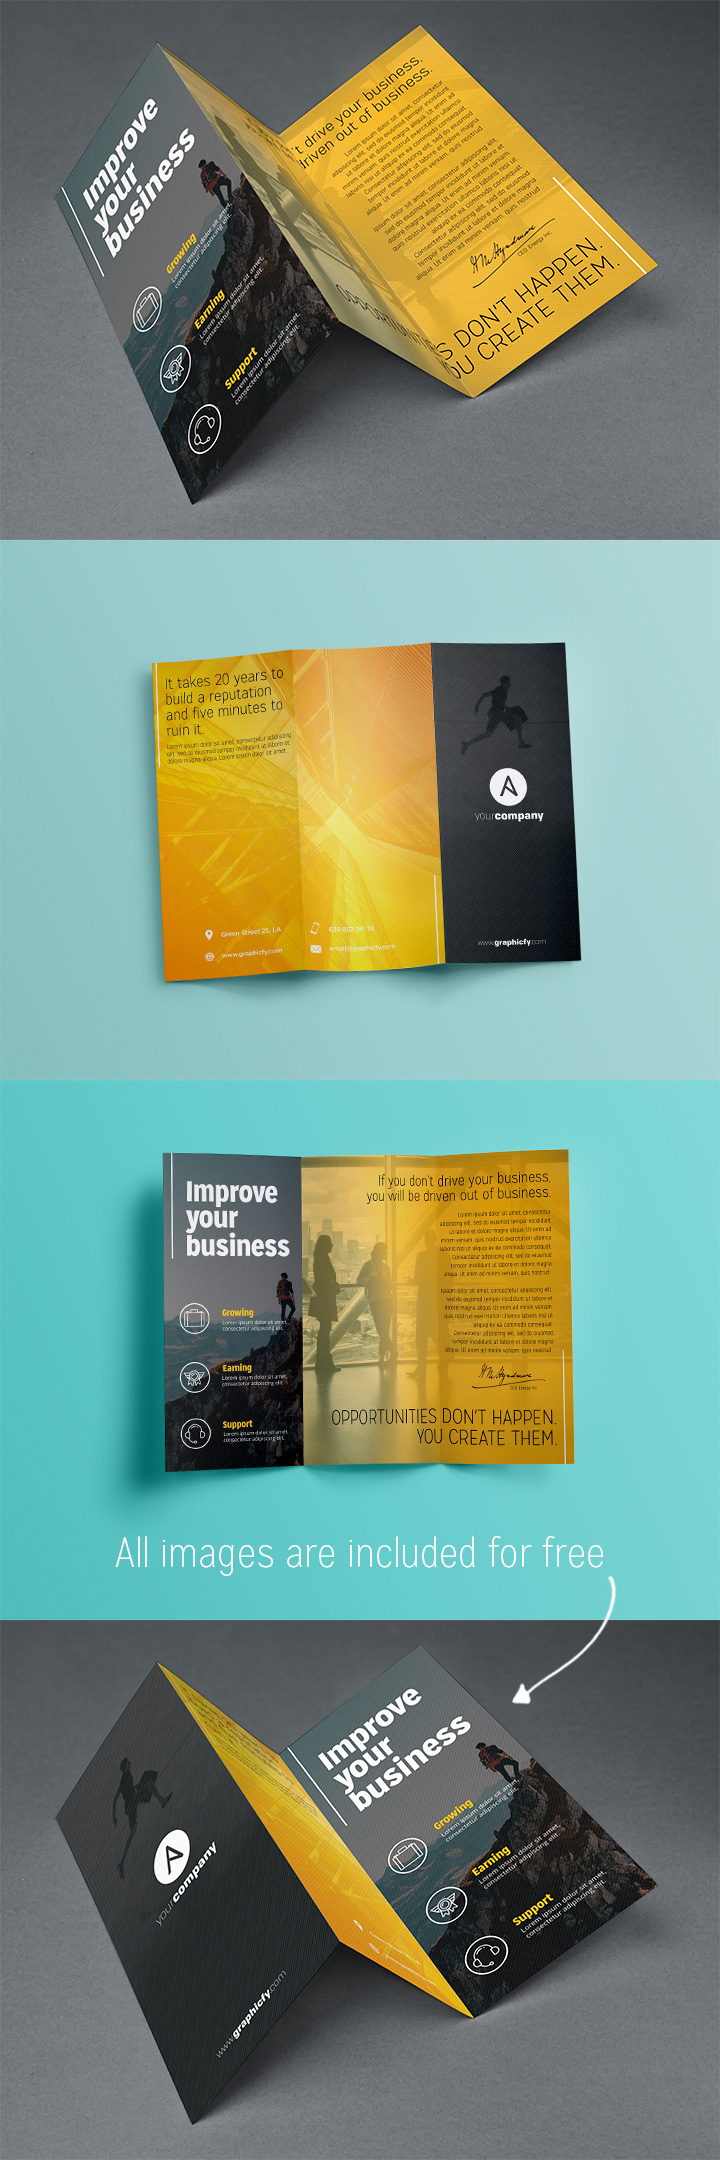 Tri fold brochure template psd brochure templates for Folded brochure template